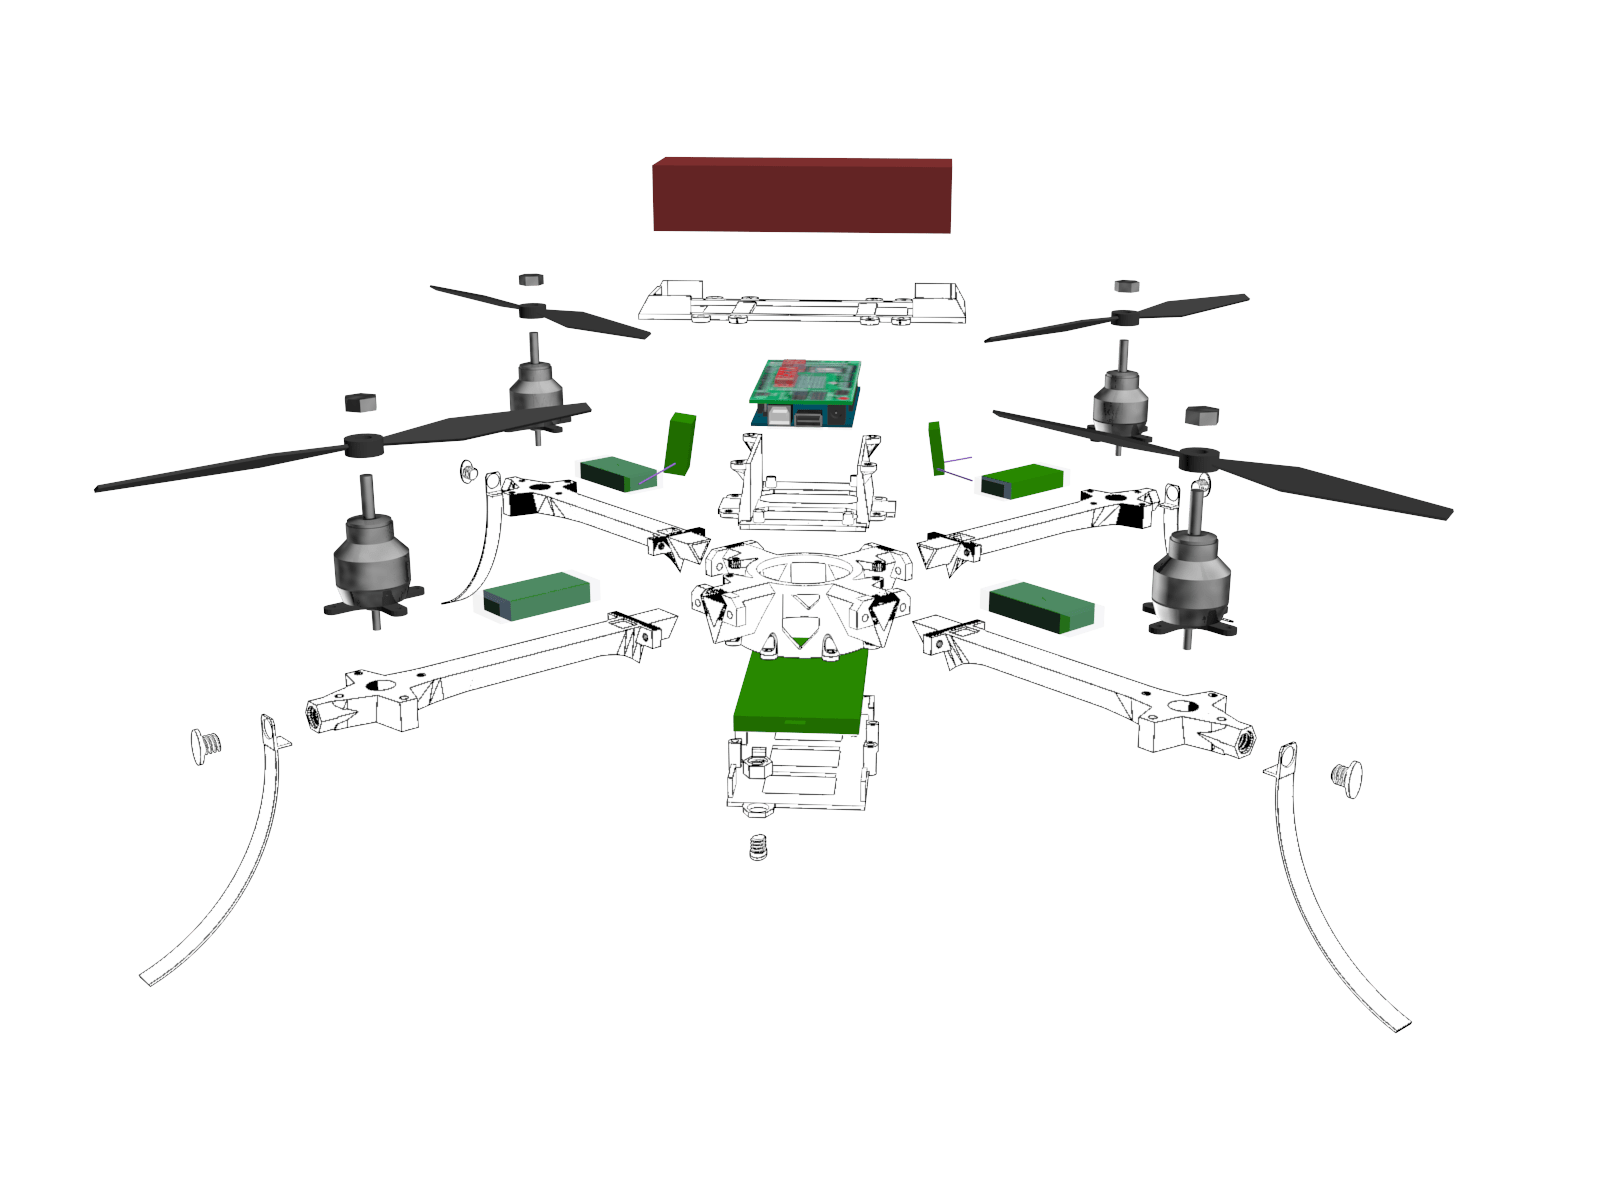 Drone Exploded View